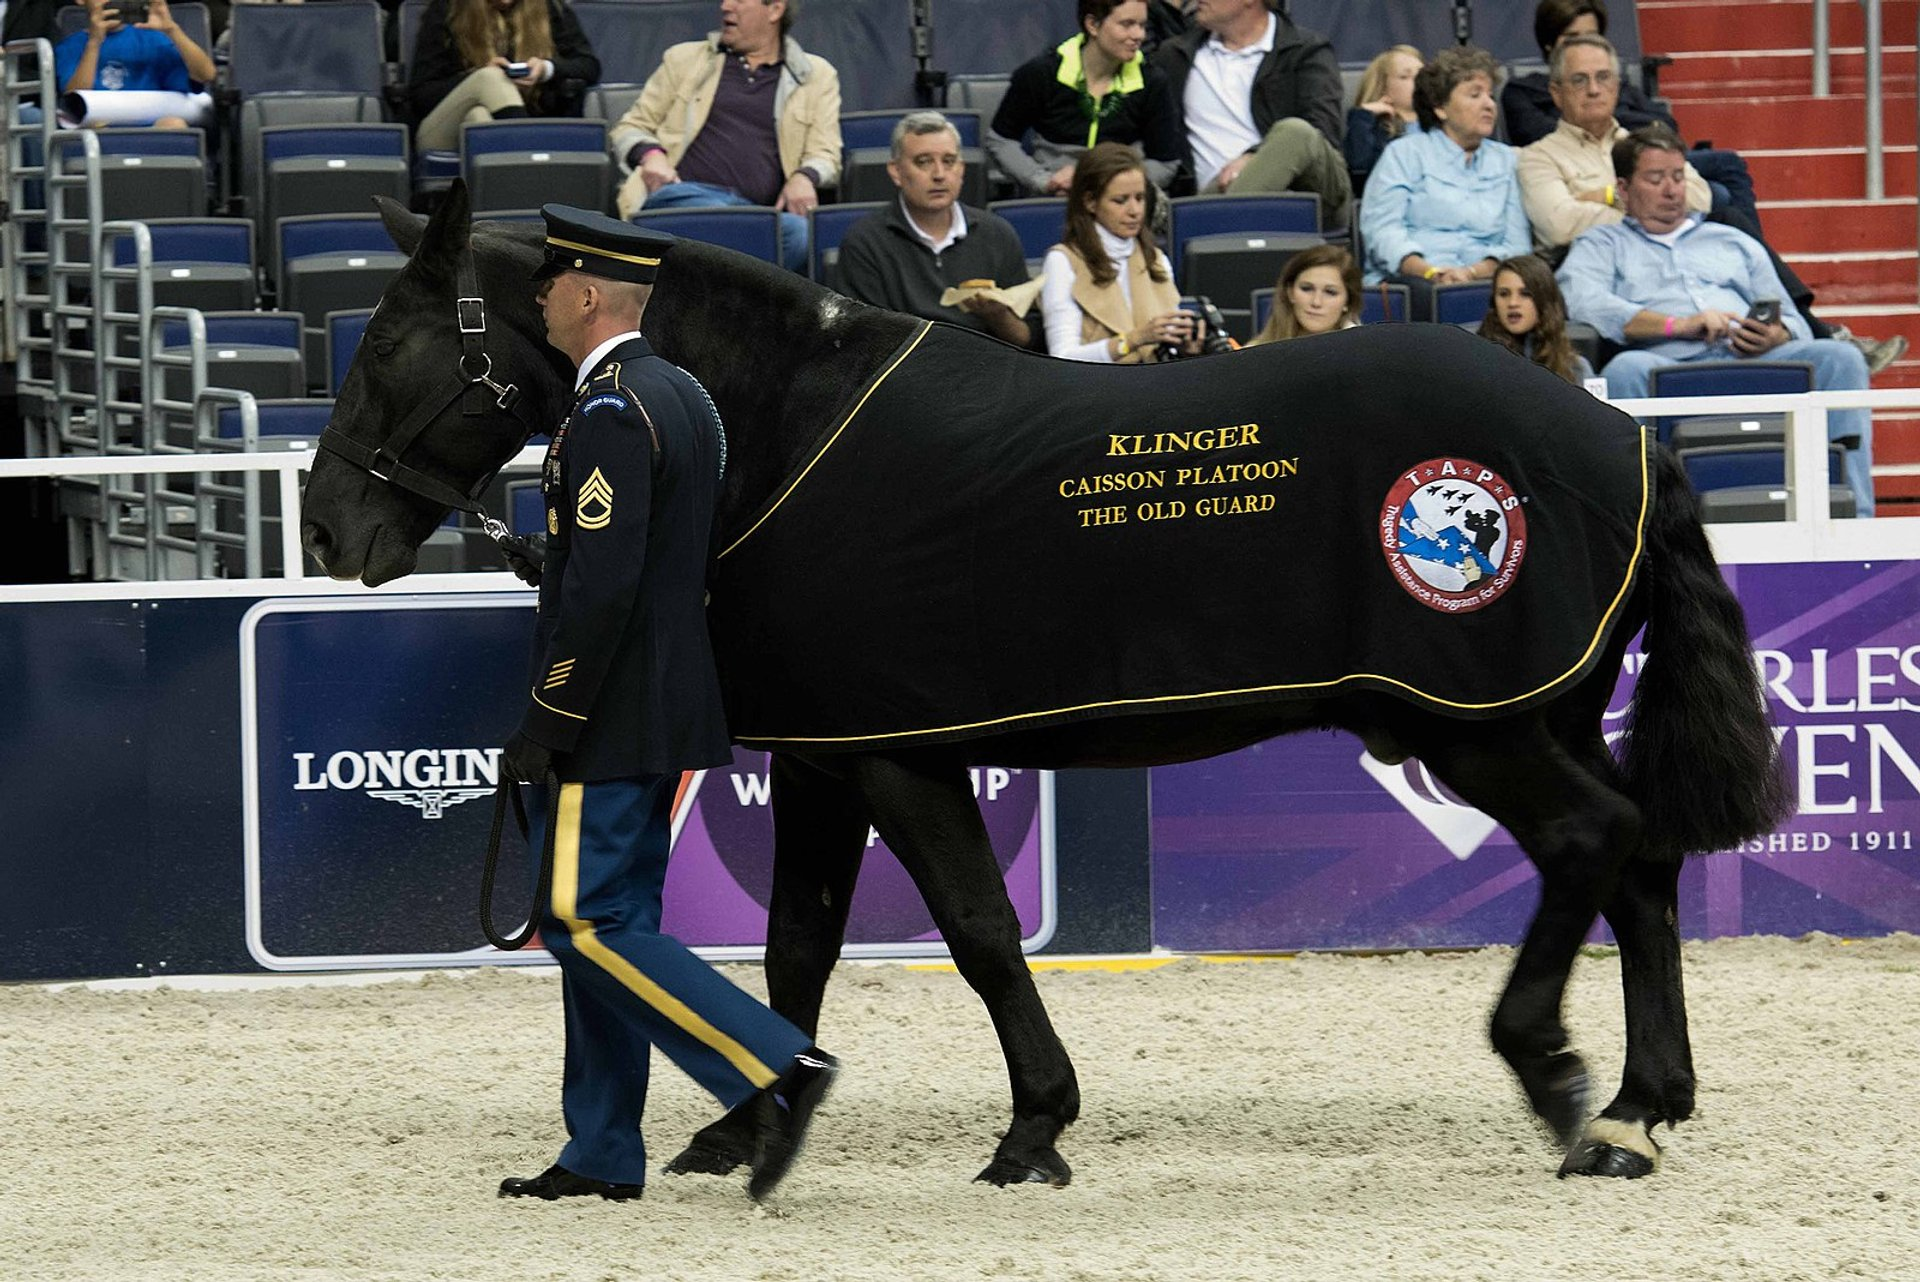 Washington International Horse Show in Washington, D.C. - Best Season 2020